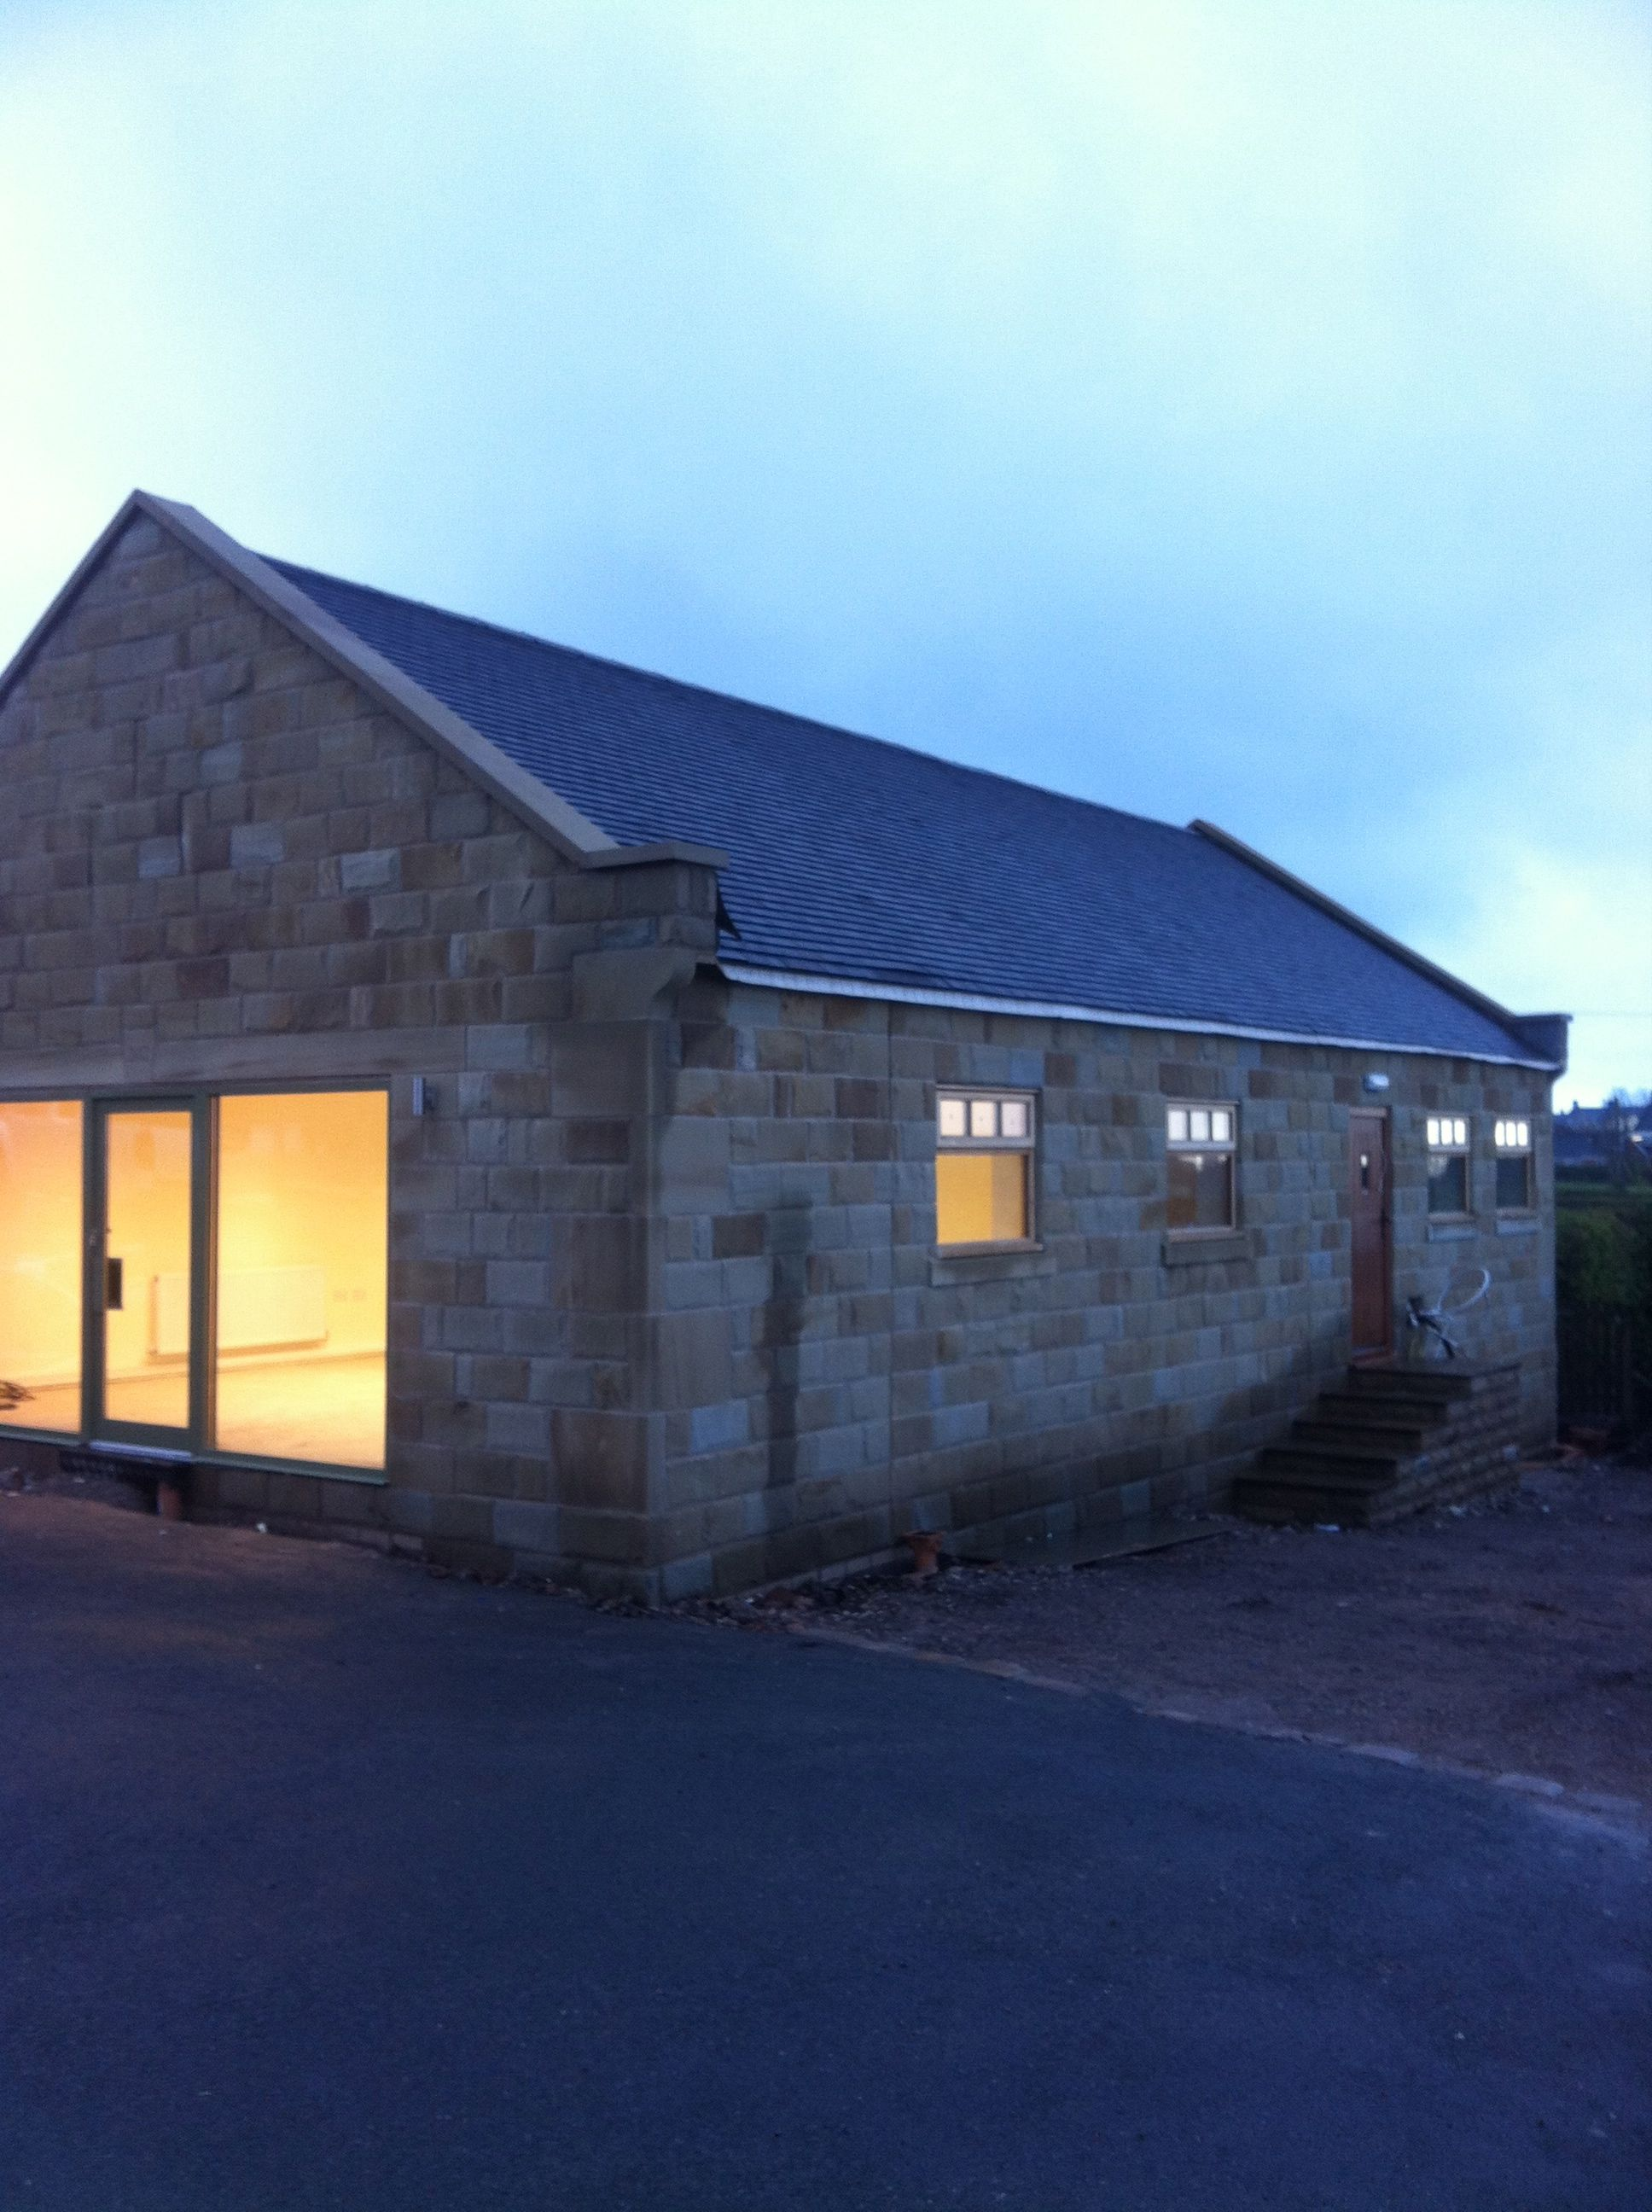 Bespoke Stone New Build, Cheshire